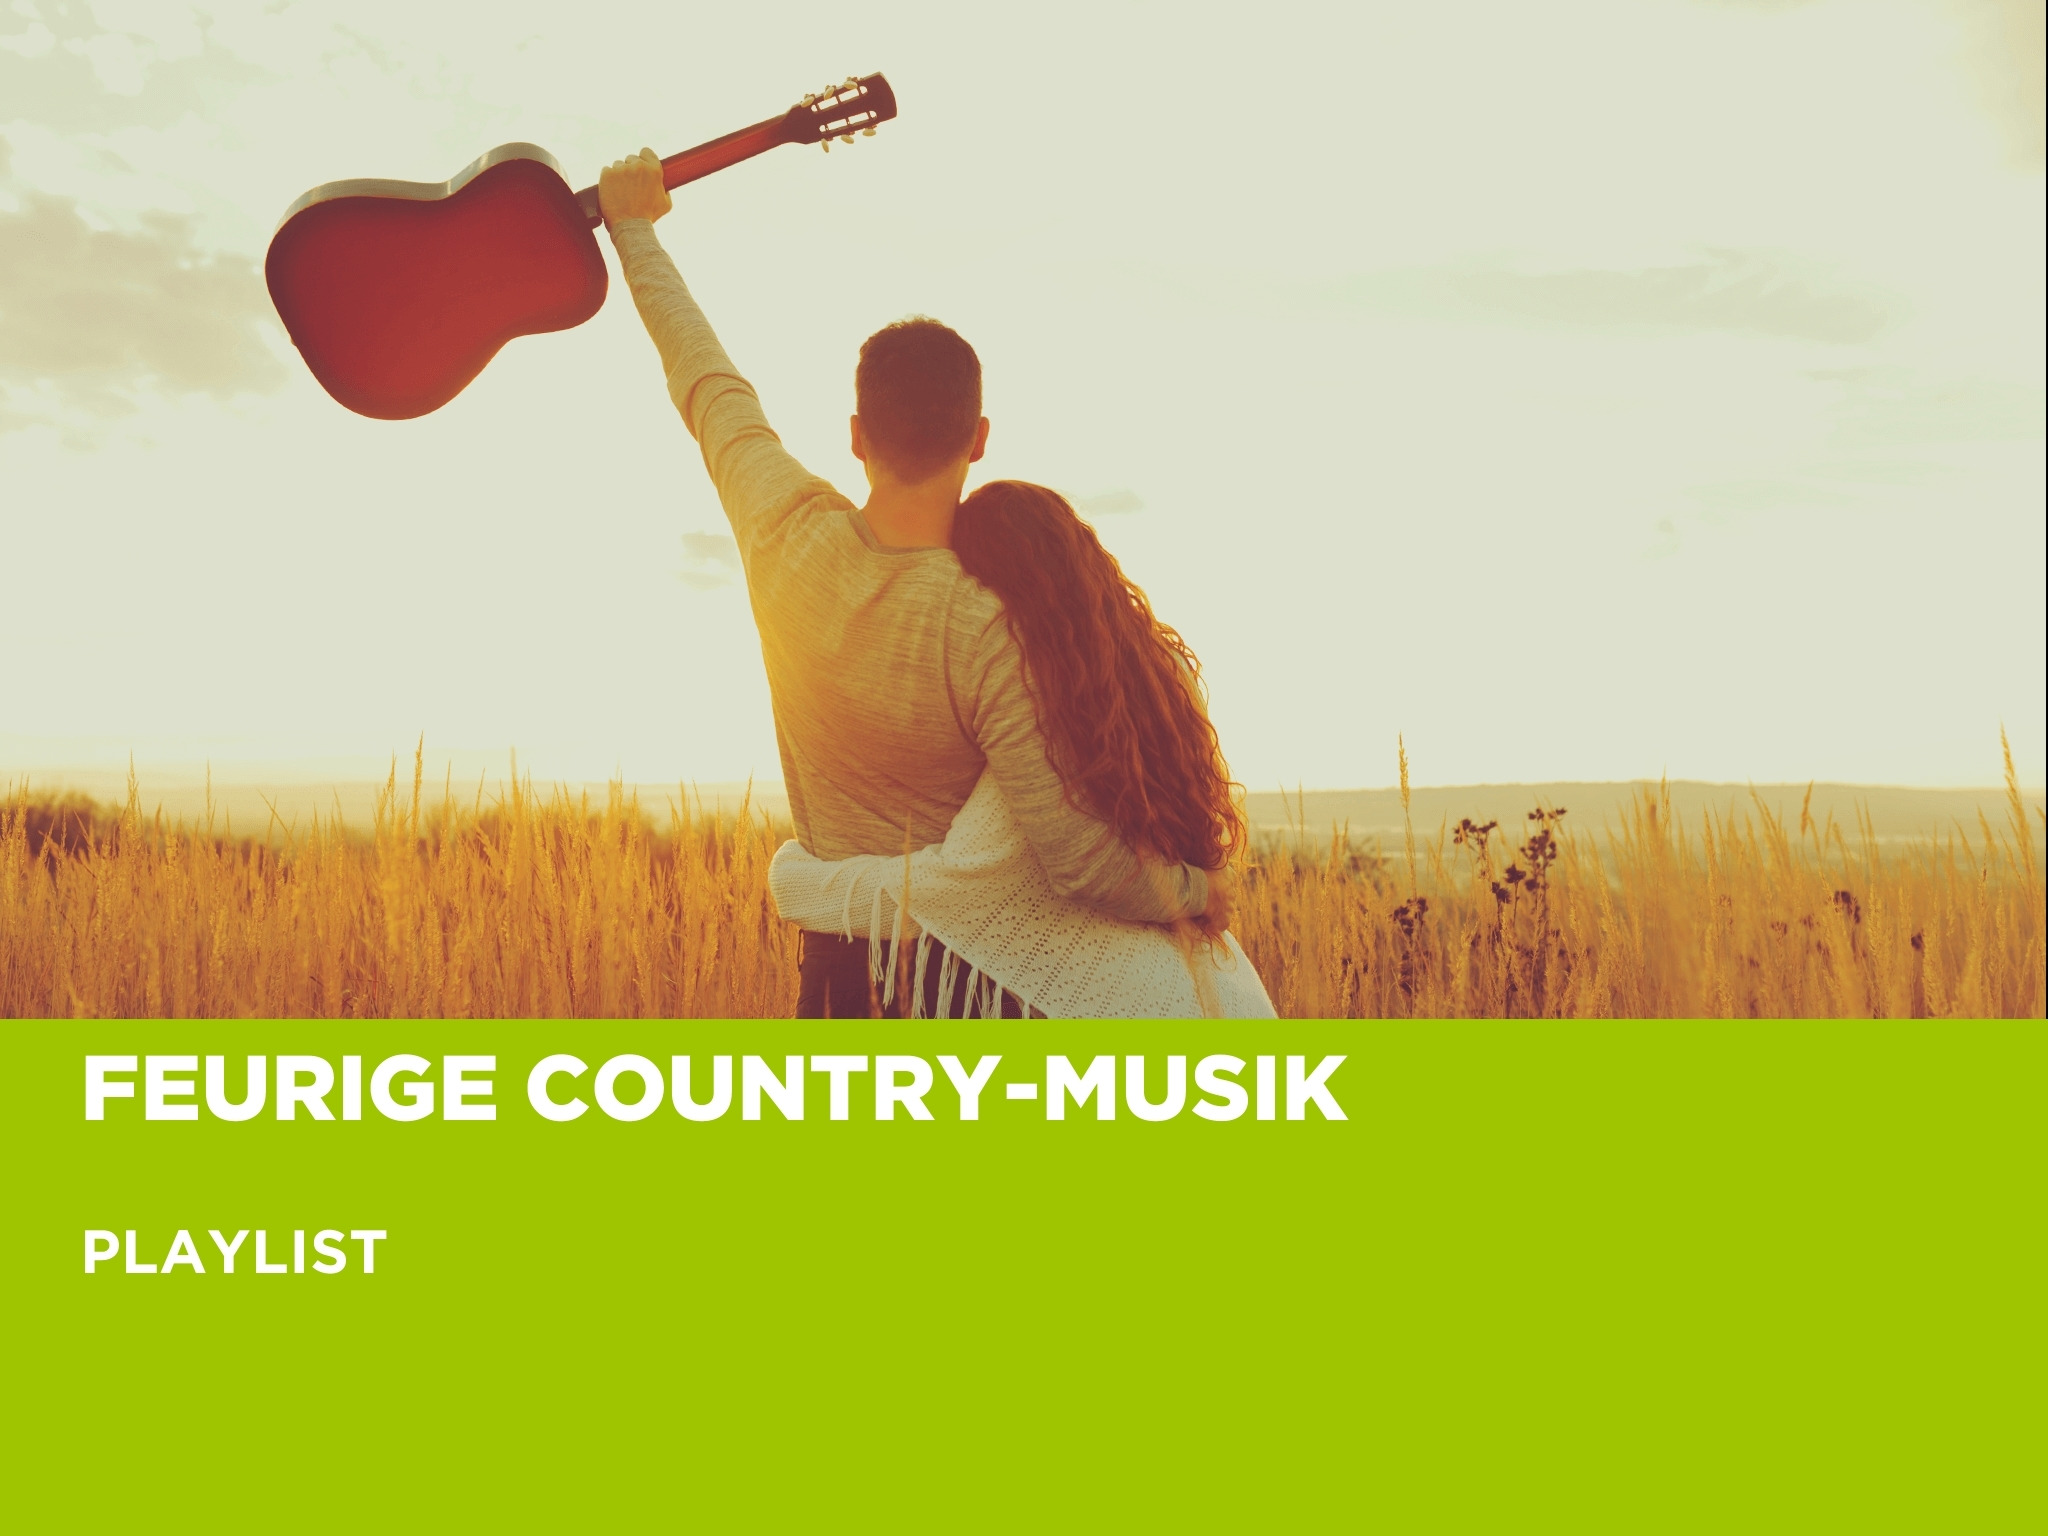 Feurige Country-Musik